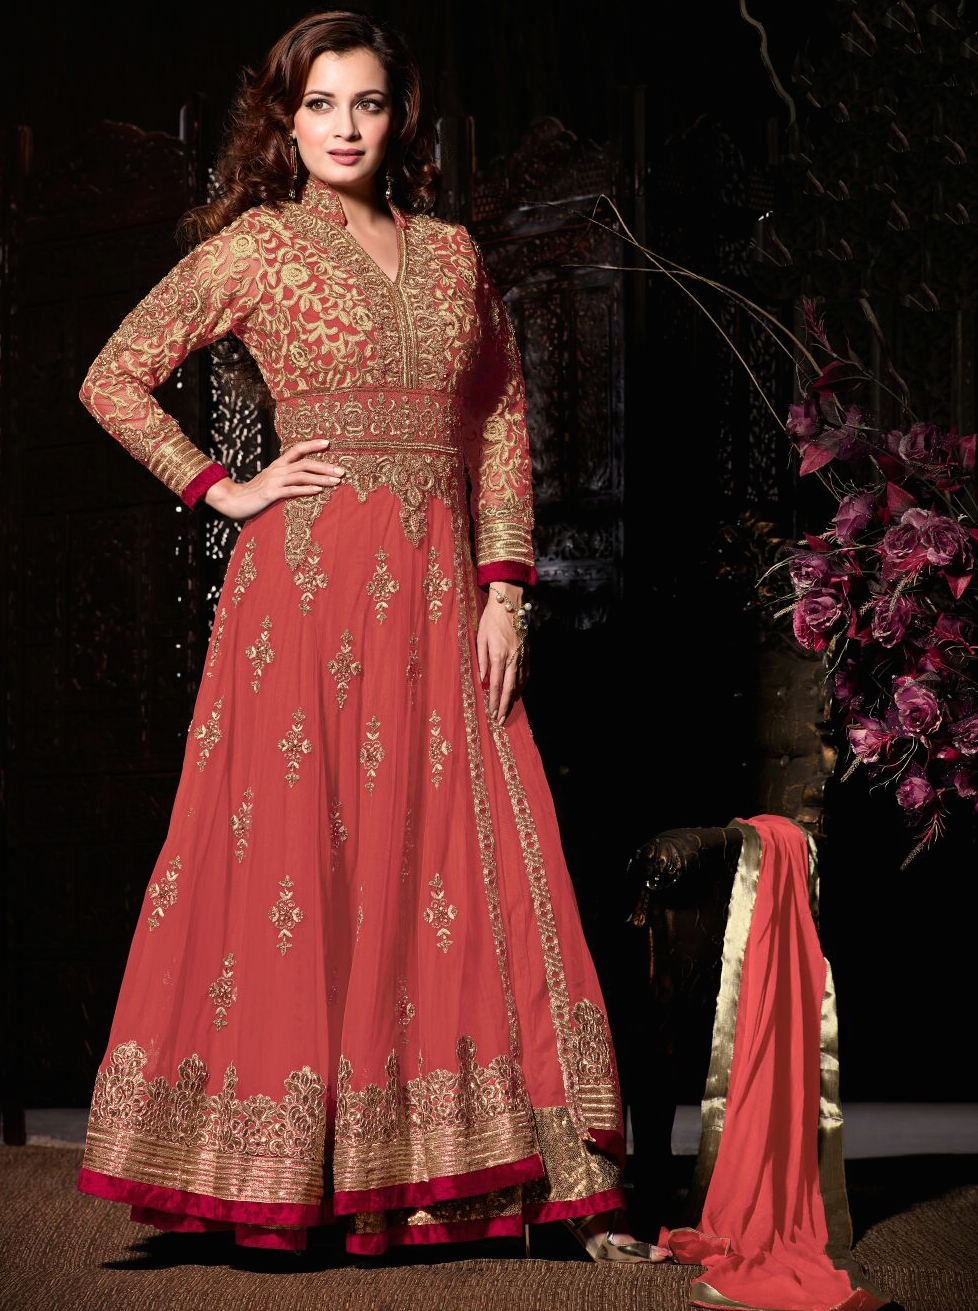 b34f6d6e0e Dia mirza light orange party wear anarkali